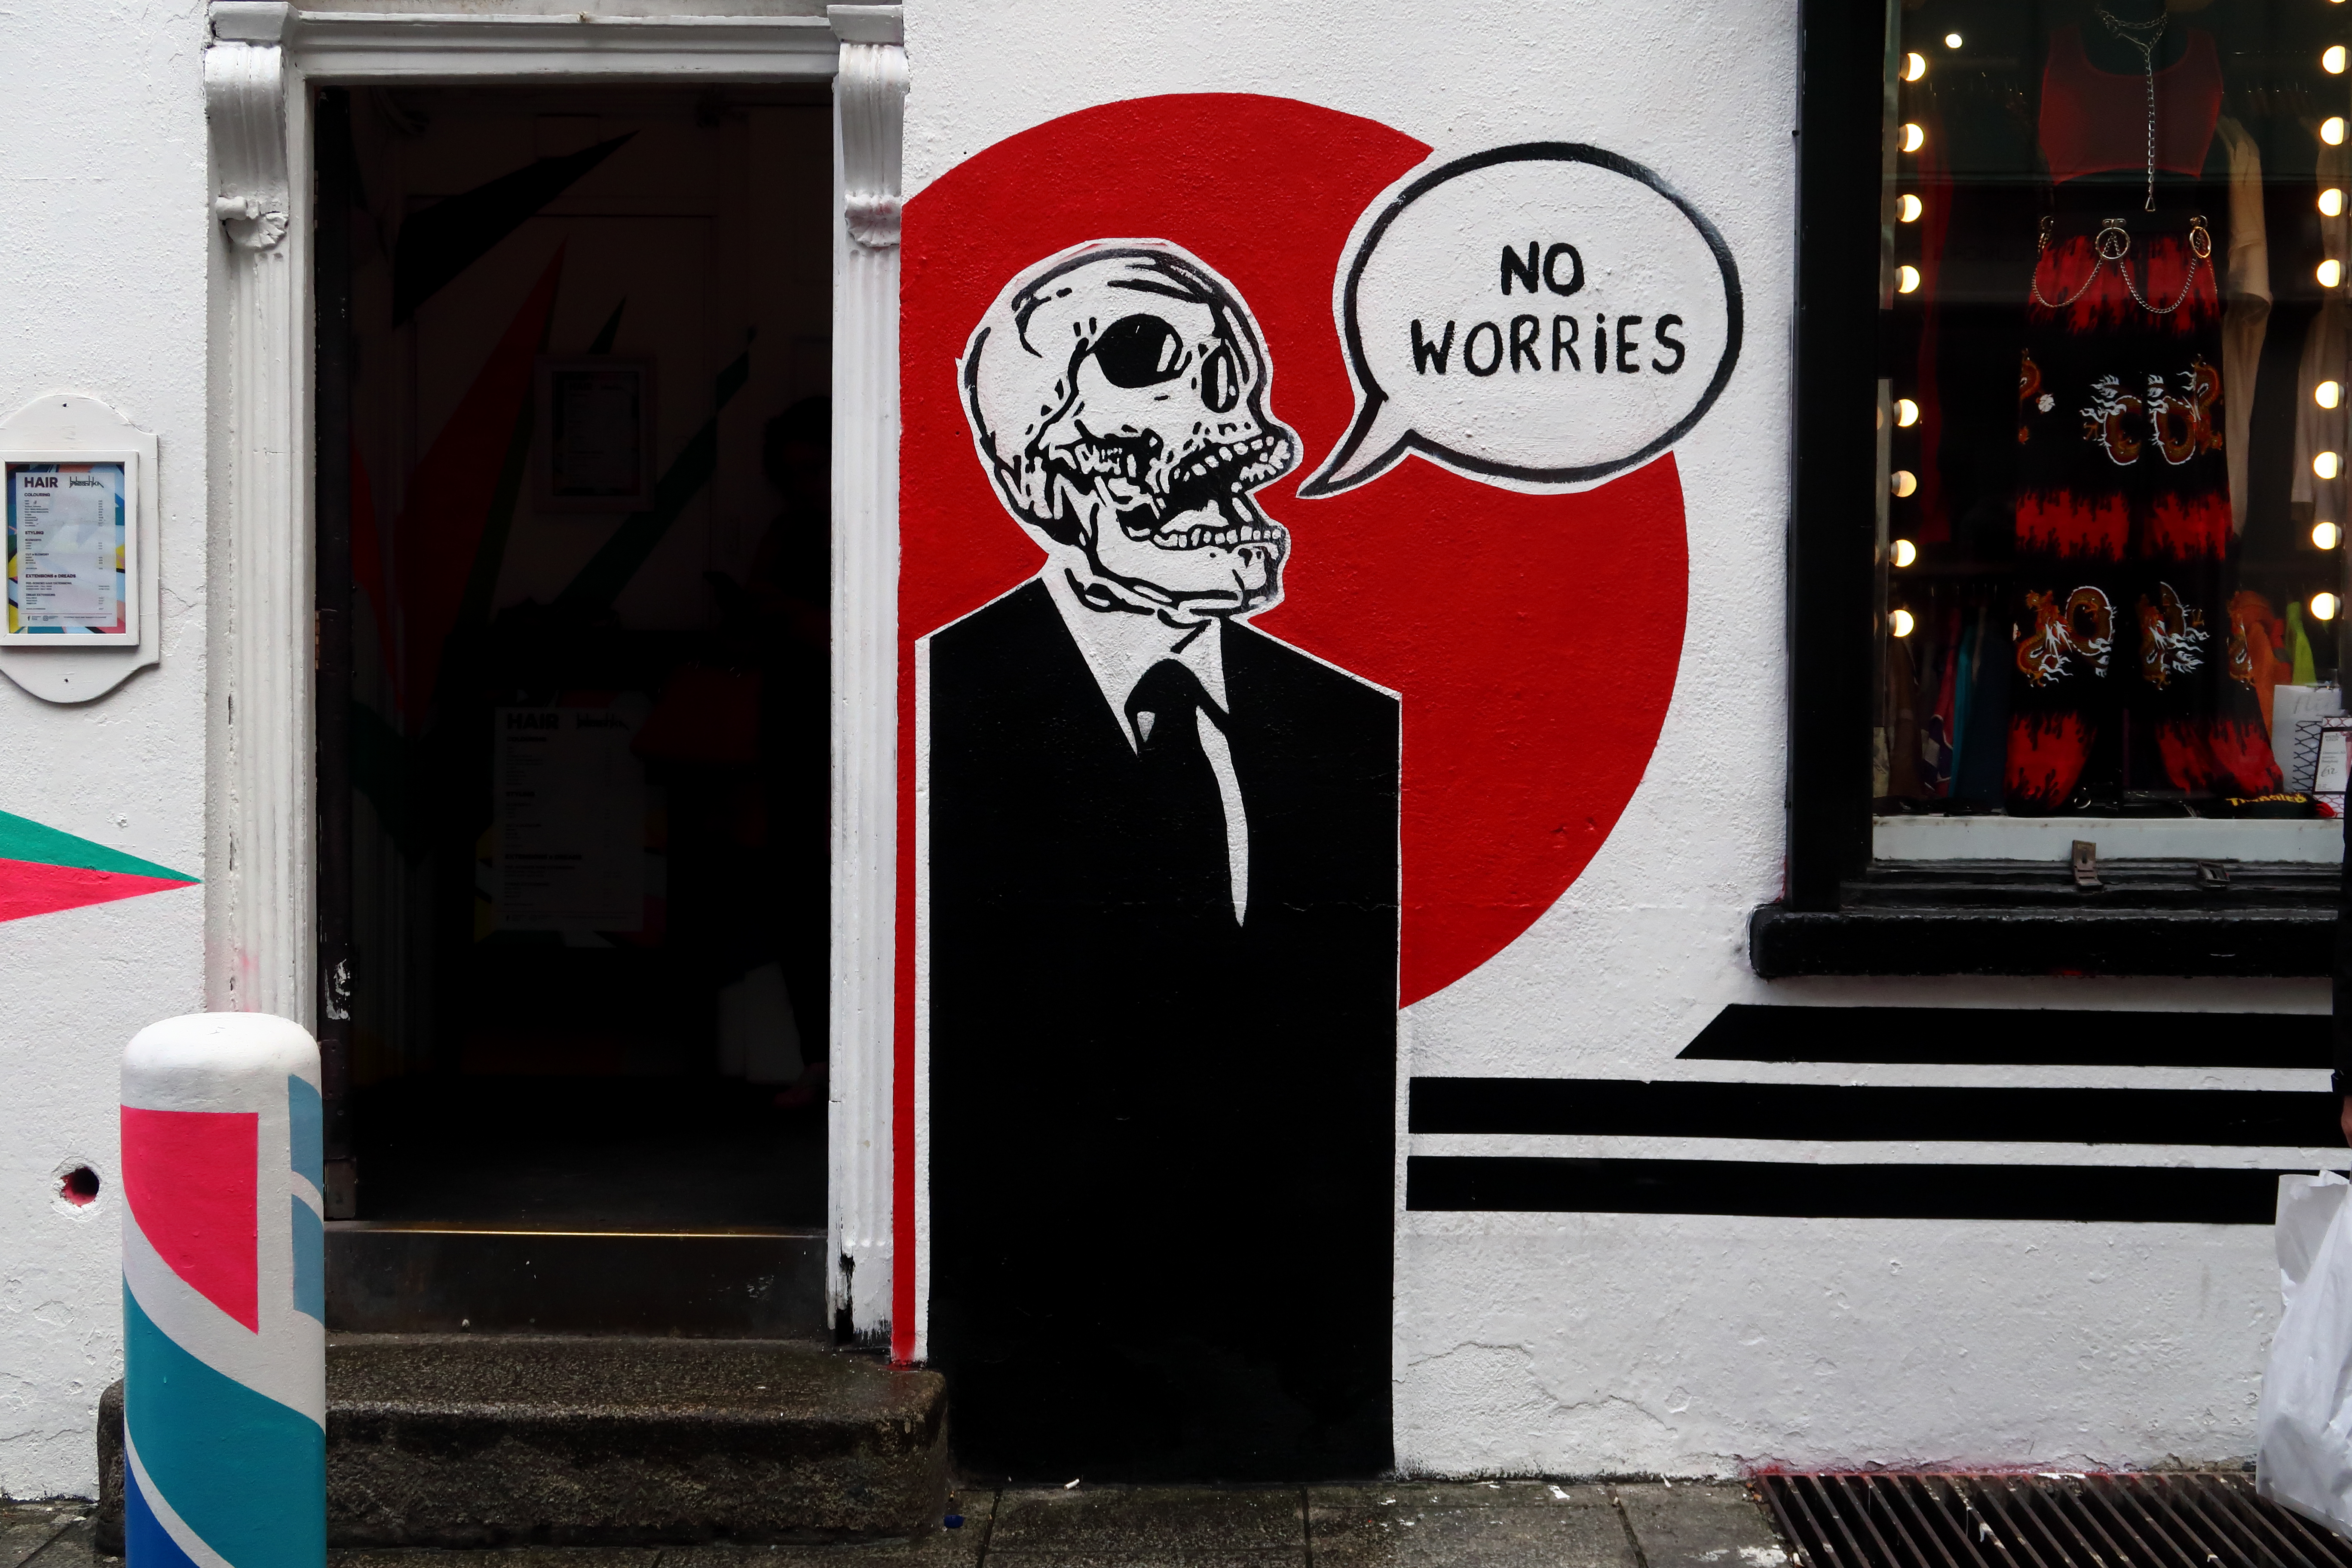 47 Dublin Street Art - No Worries